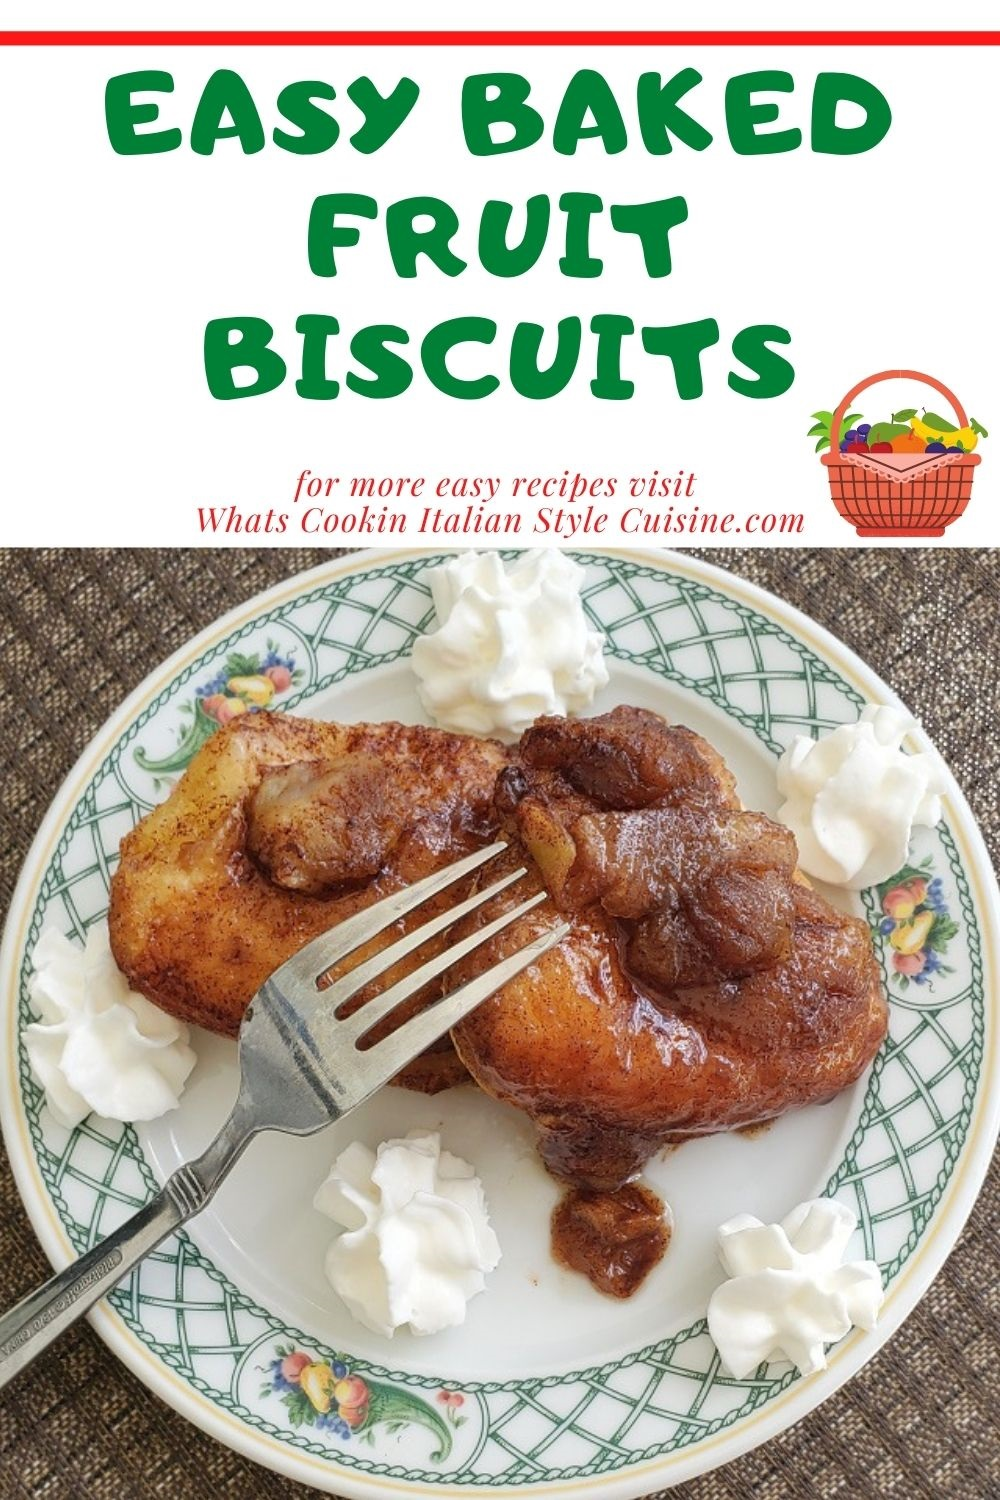 this is a pin on how to make easy baked fruit biscuits